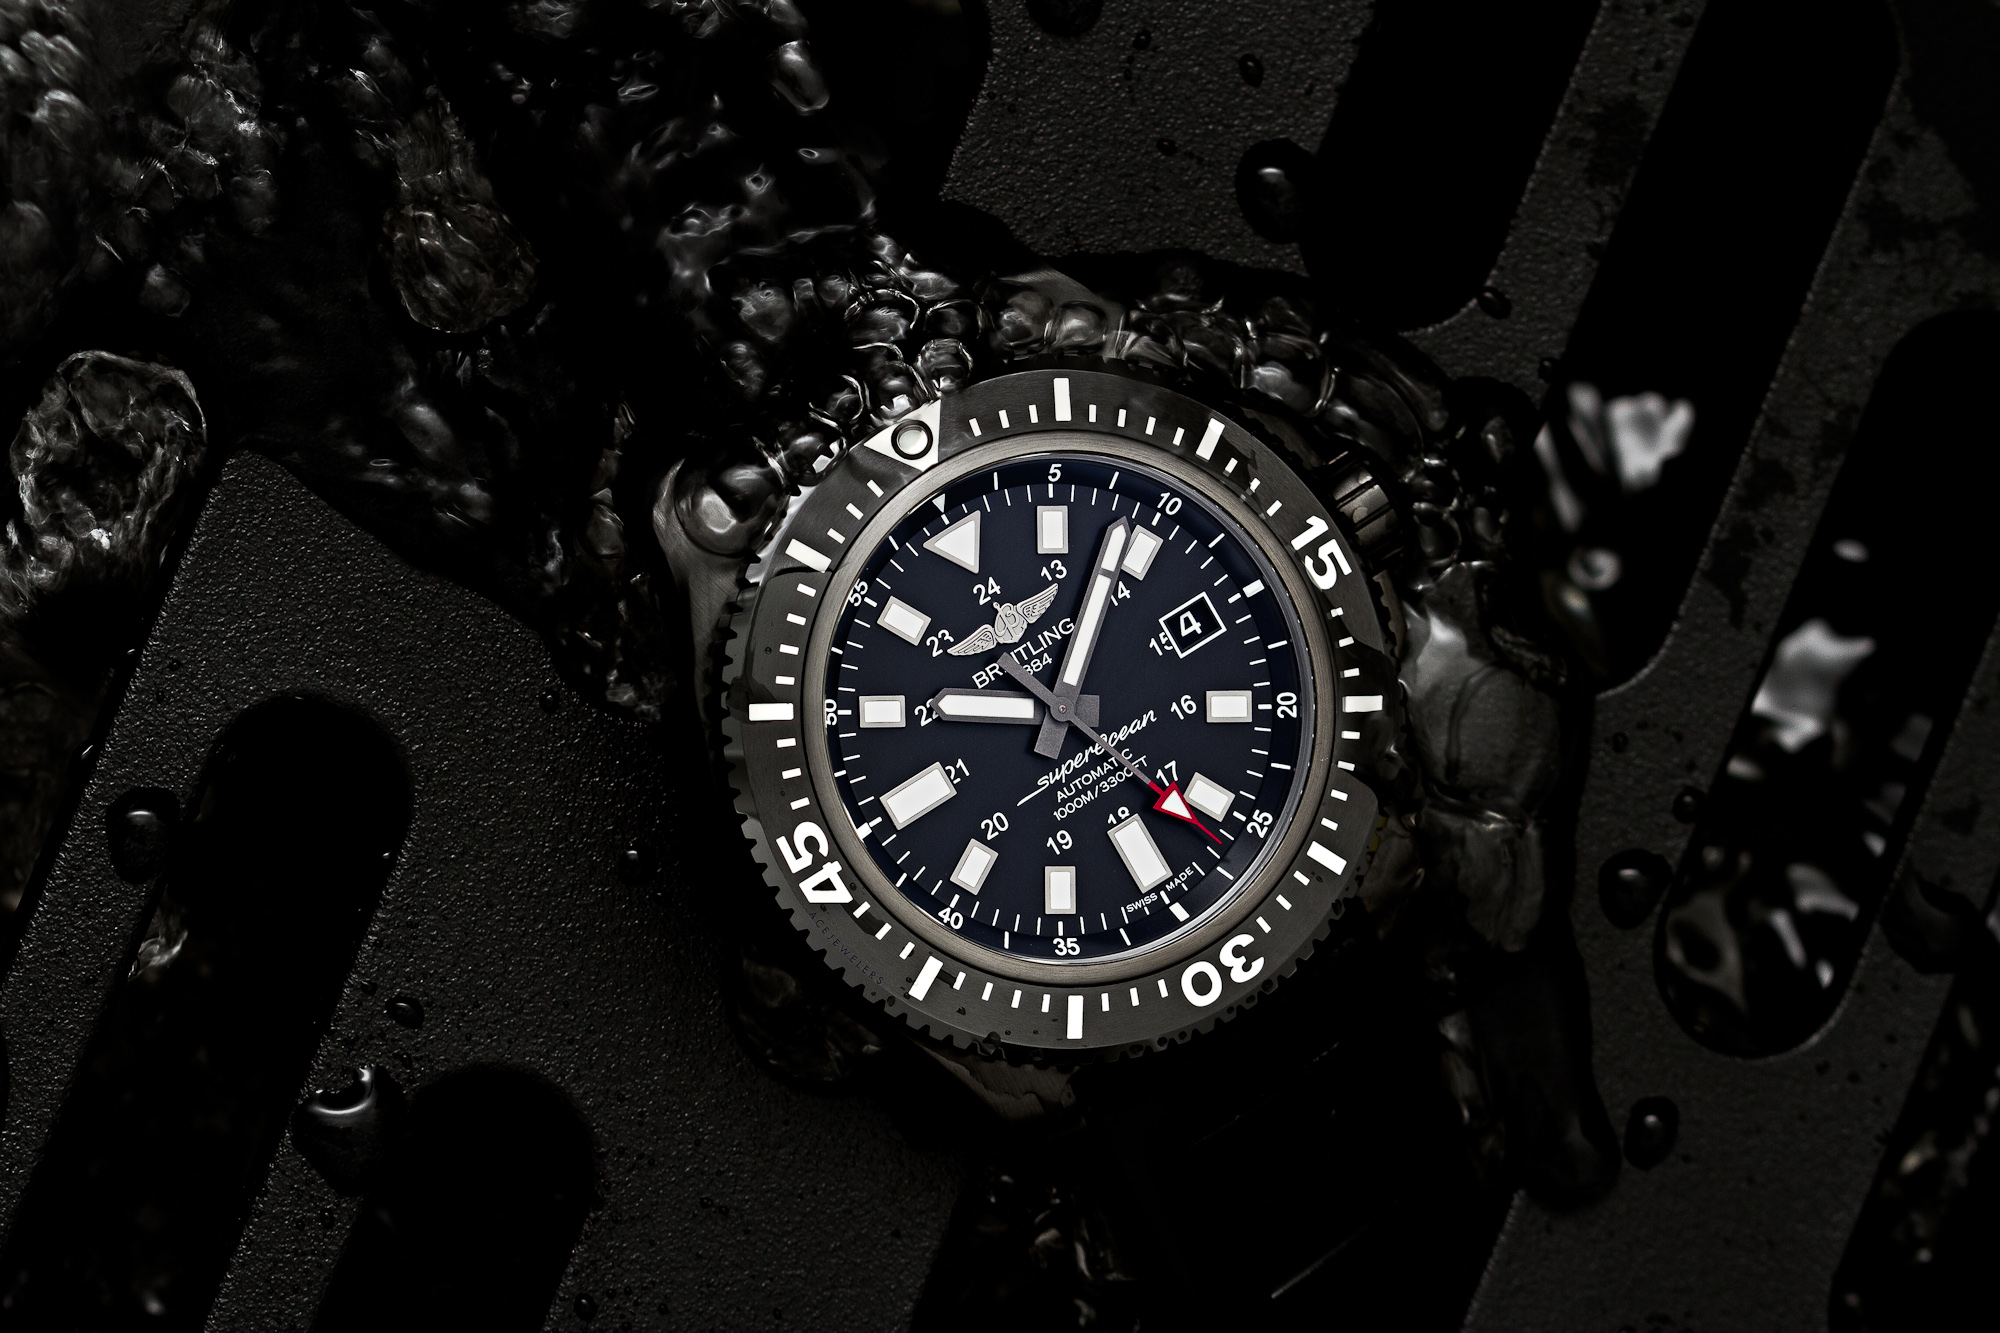 breitling-superocean-speciale-blacksteel-ceramic-baselworld-2016-ace-jewelers-amsterdam_